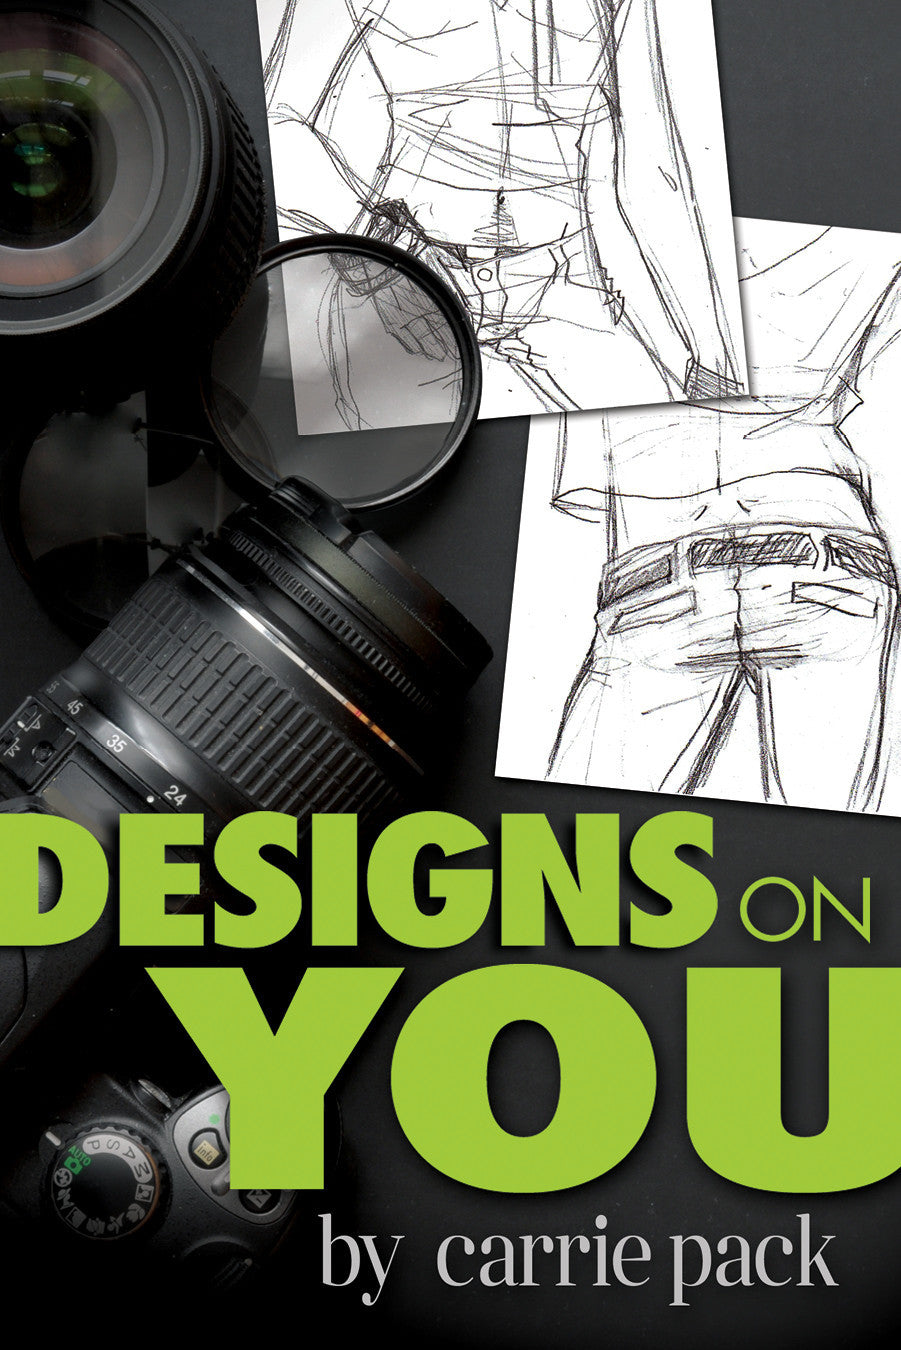 Designs On You by Carrie Pack